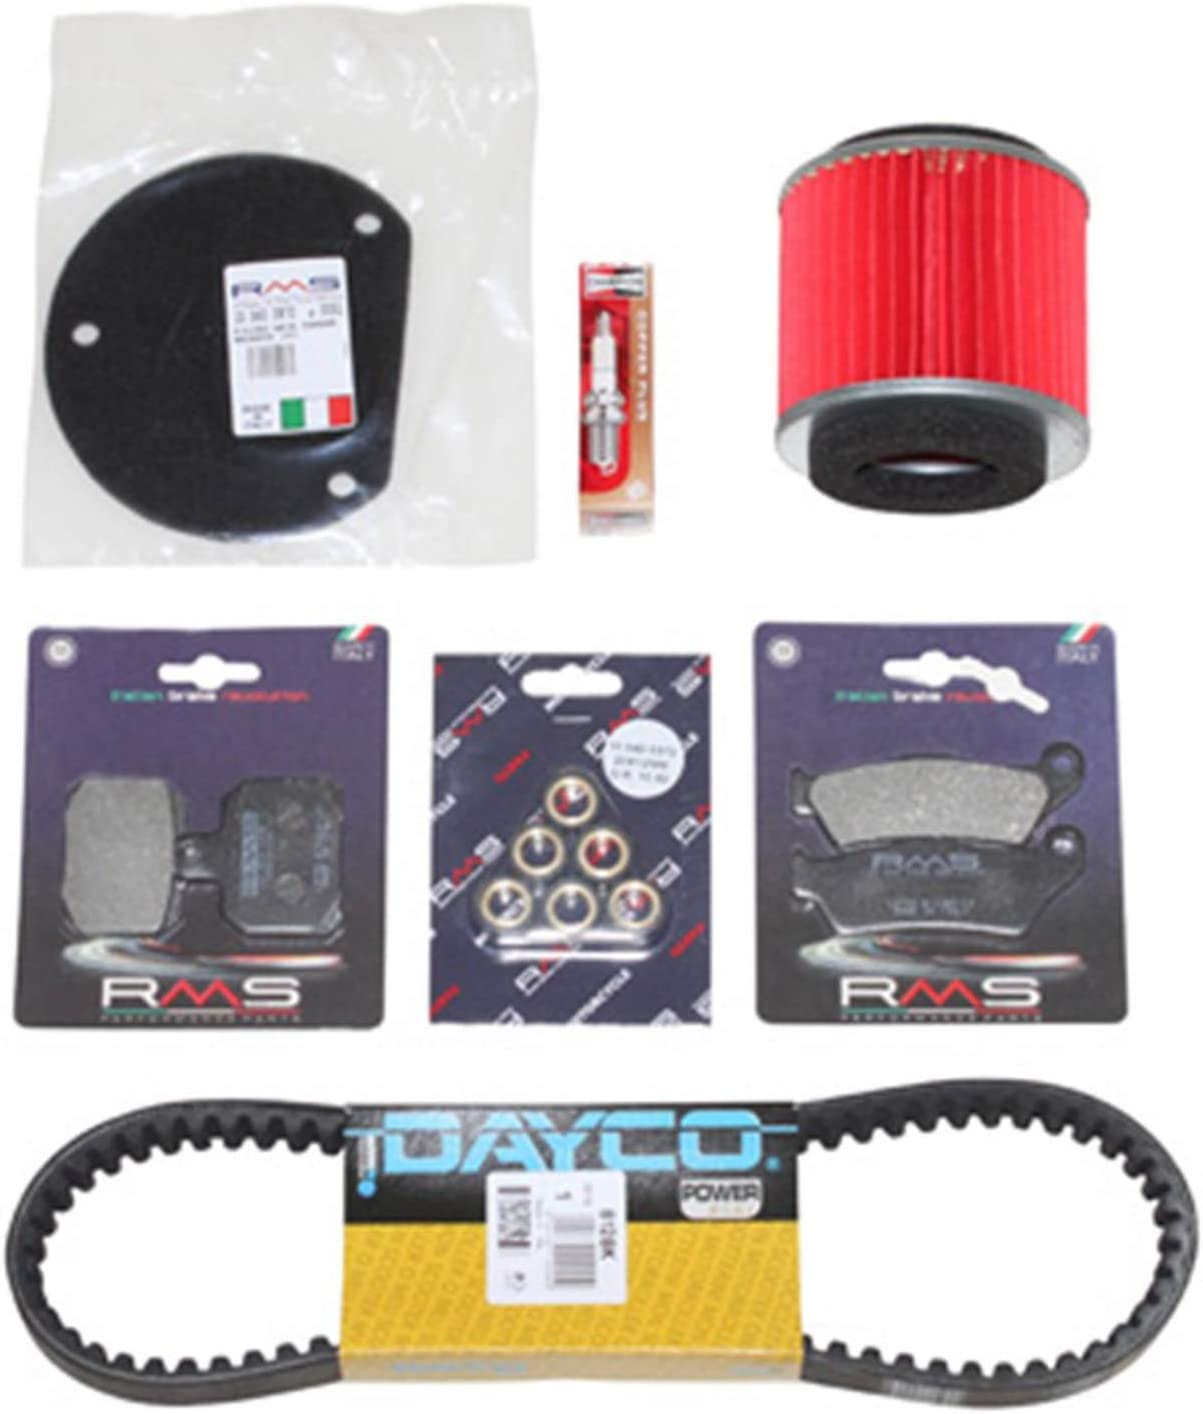 rms Motodak Kit Entretien maxiscooter Adaptable Yamaha 125 Majesty 2006+2009-mbk 125 skyliner 2006+2009